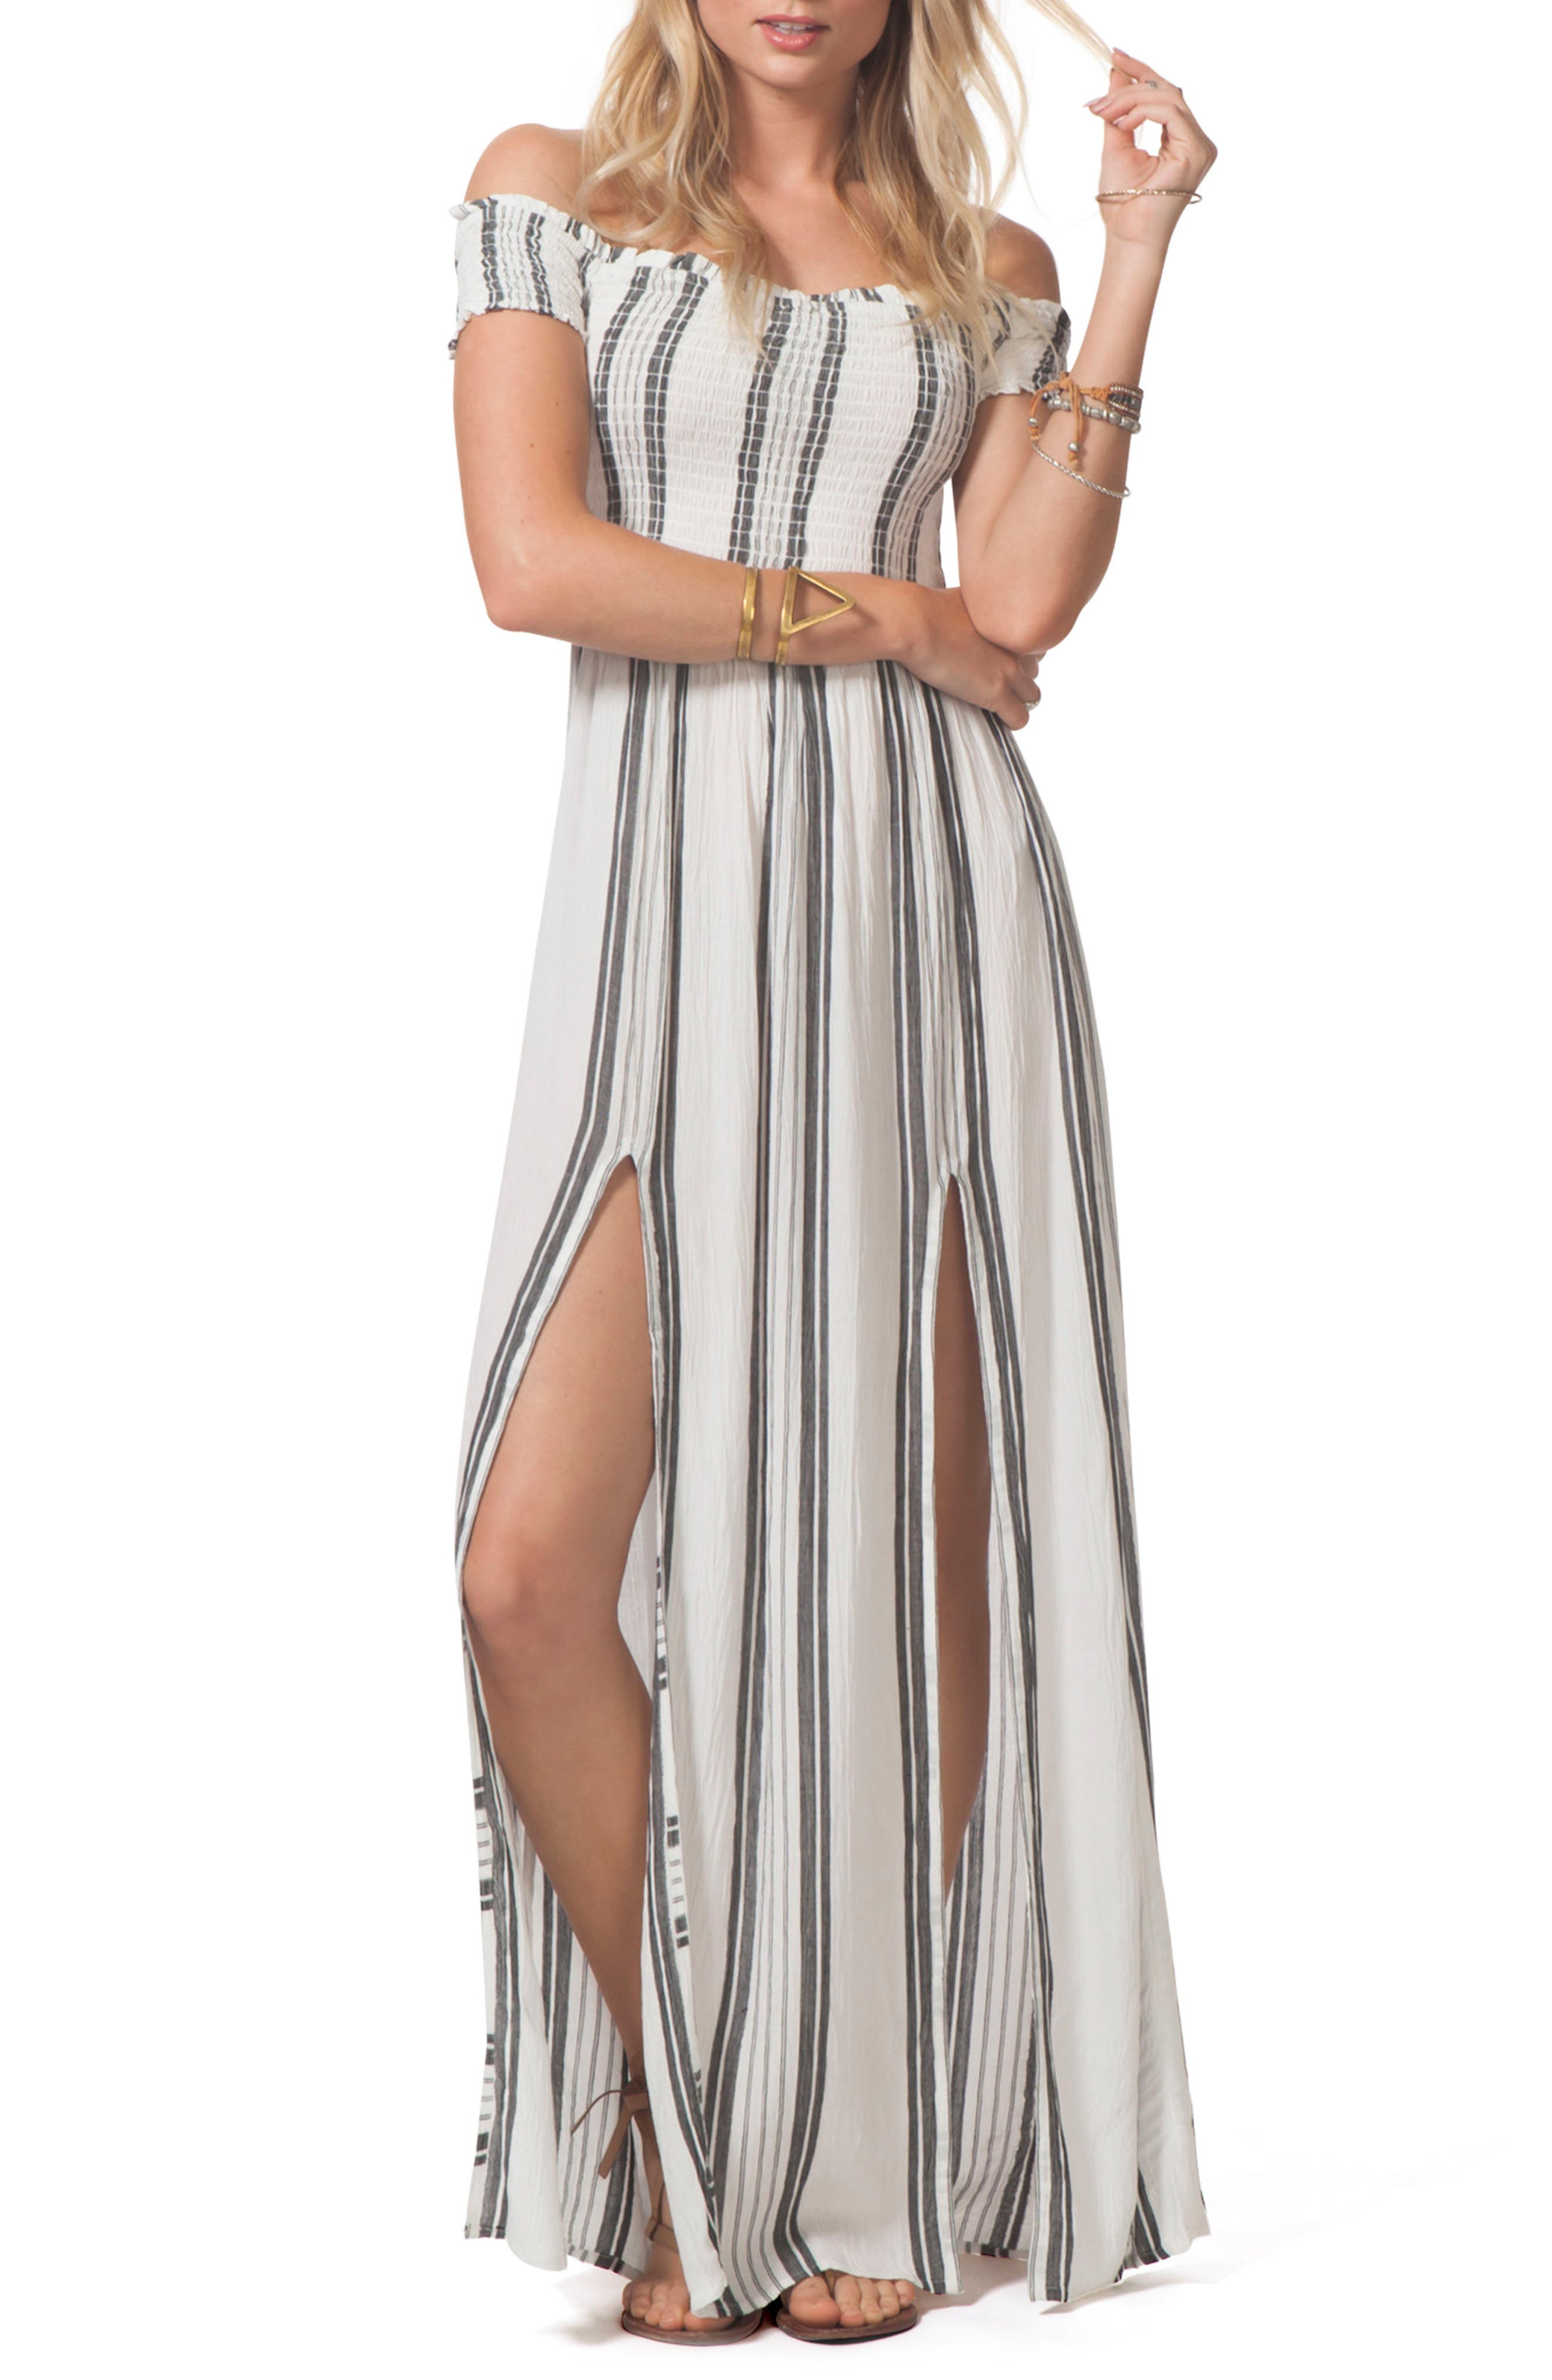 Soulmate Off the Shoulder Maxi Dress,                         Main,                         color, White